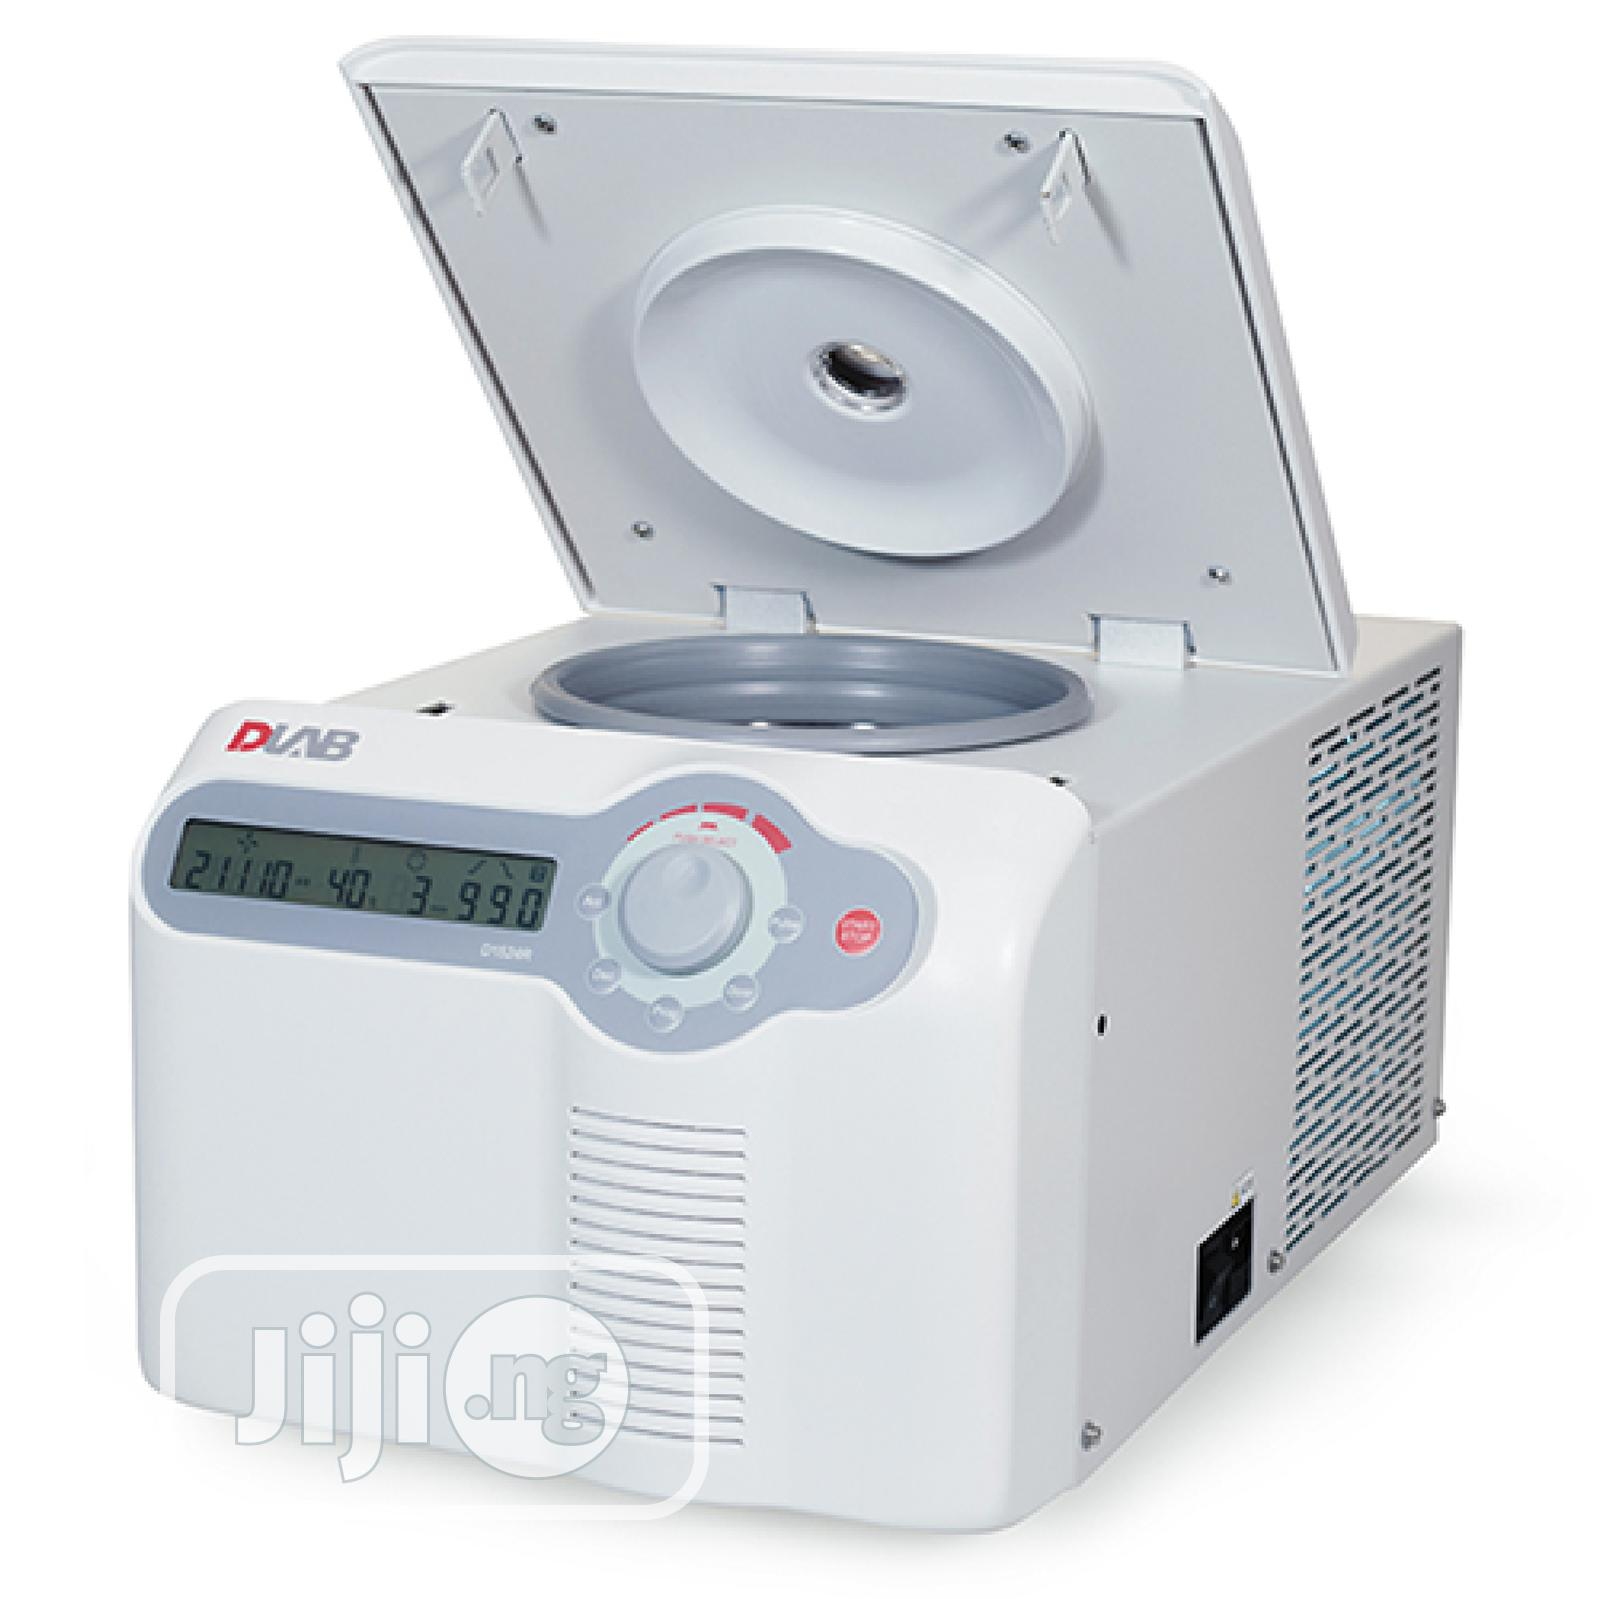 D1524R High-speed Refrigerated Micro Centrifuge